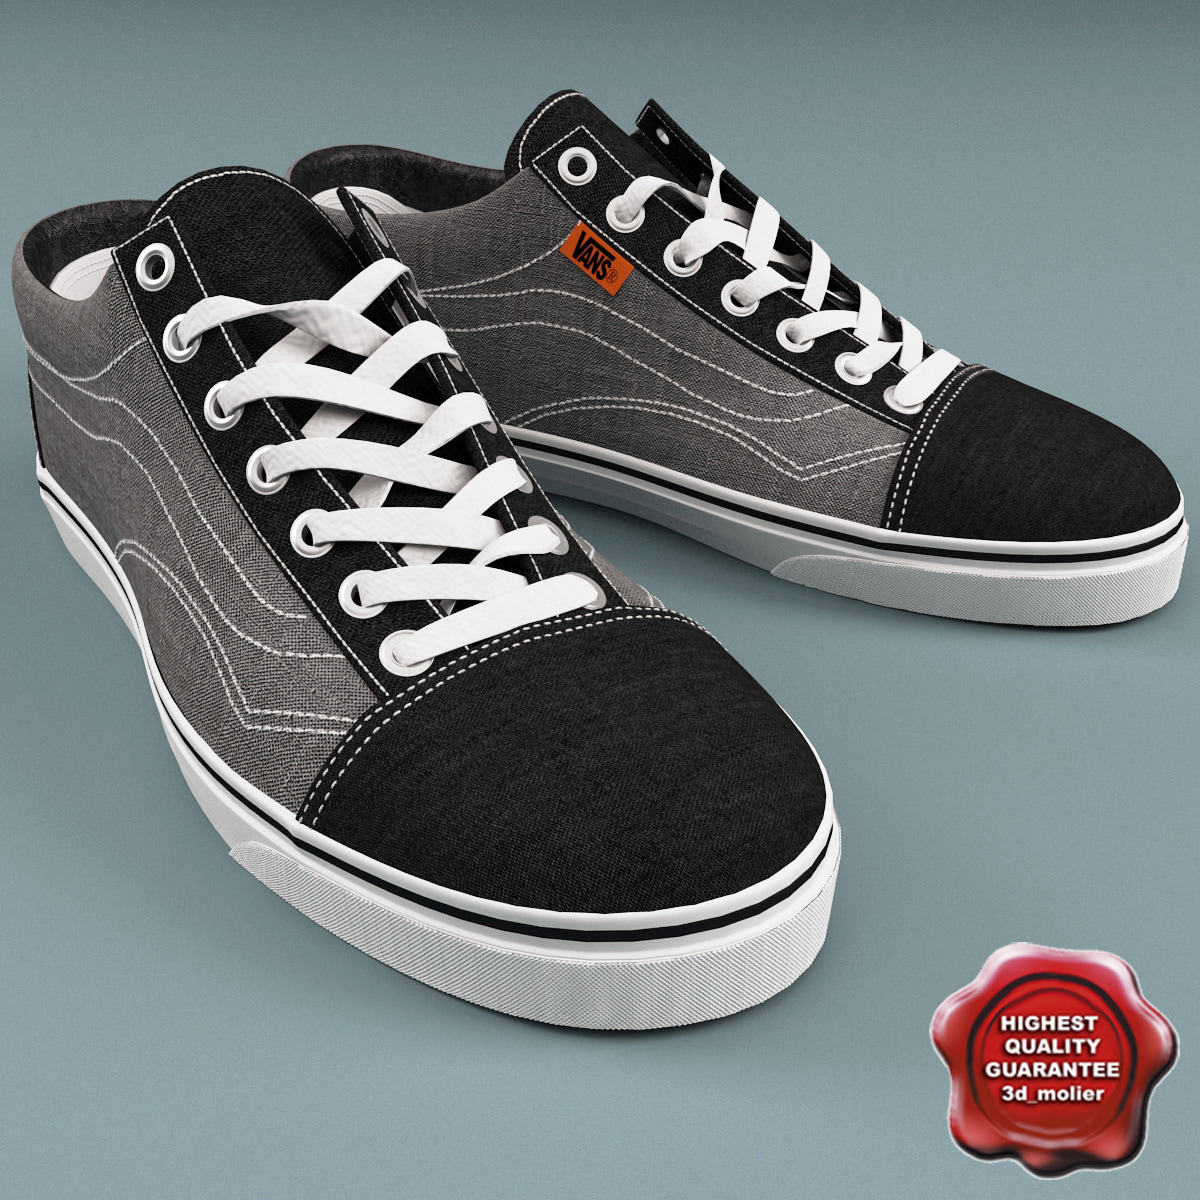 Vans_Shoes_For_Men_00.jpg